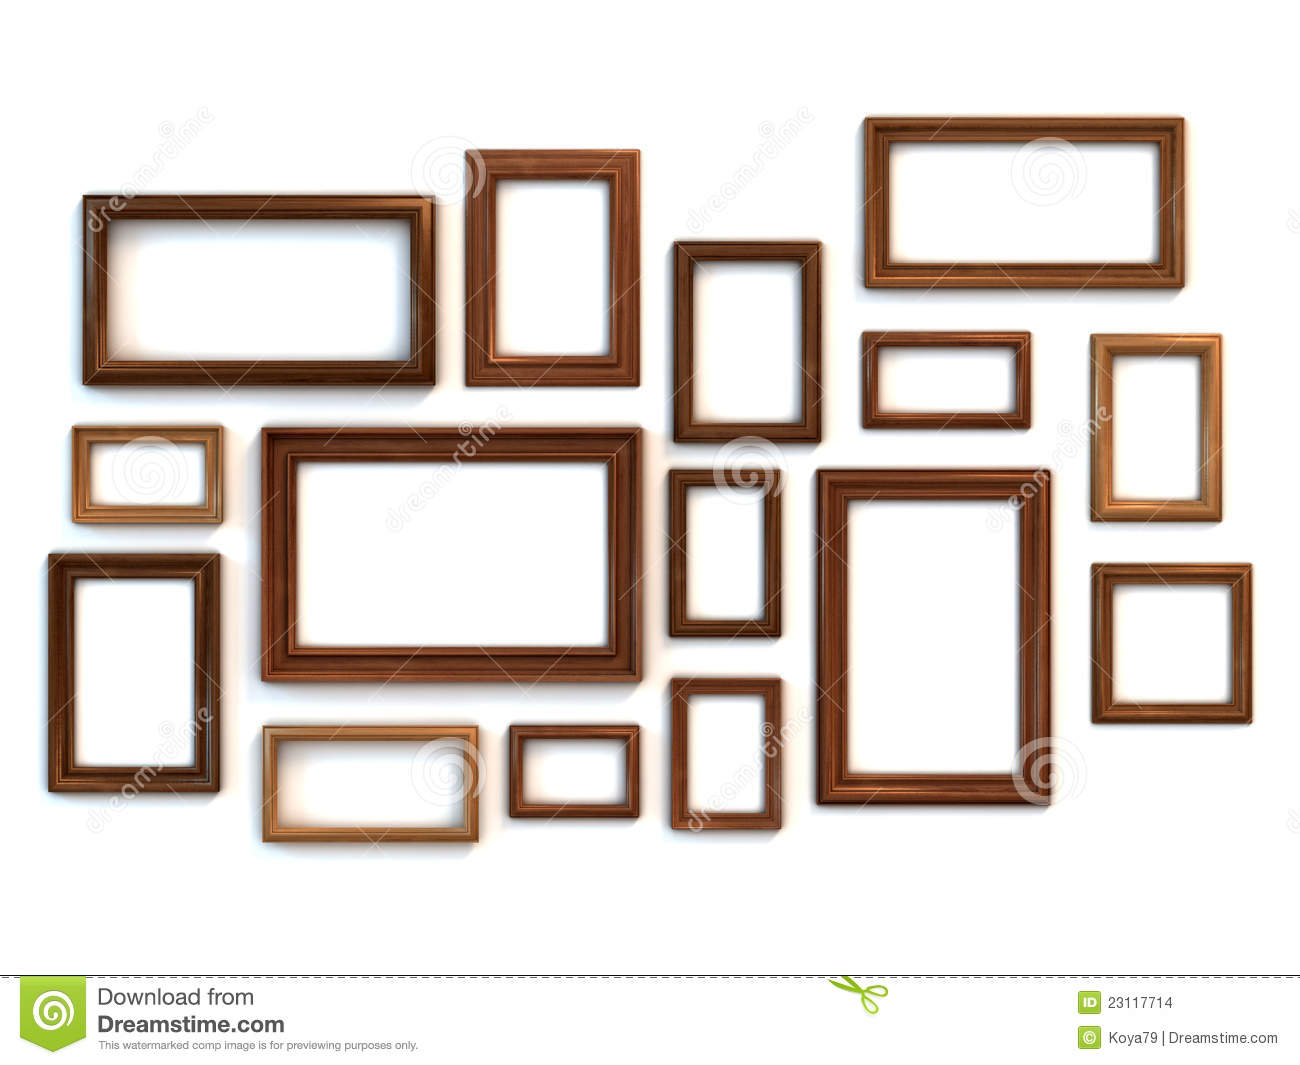 Paint For Glasses Frame : Photo Or Painting Frames Set Stock Images - Image: 23117714